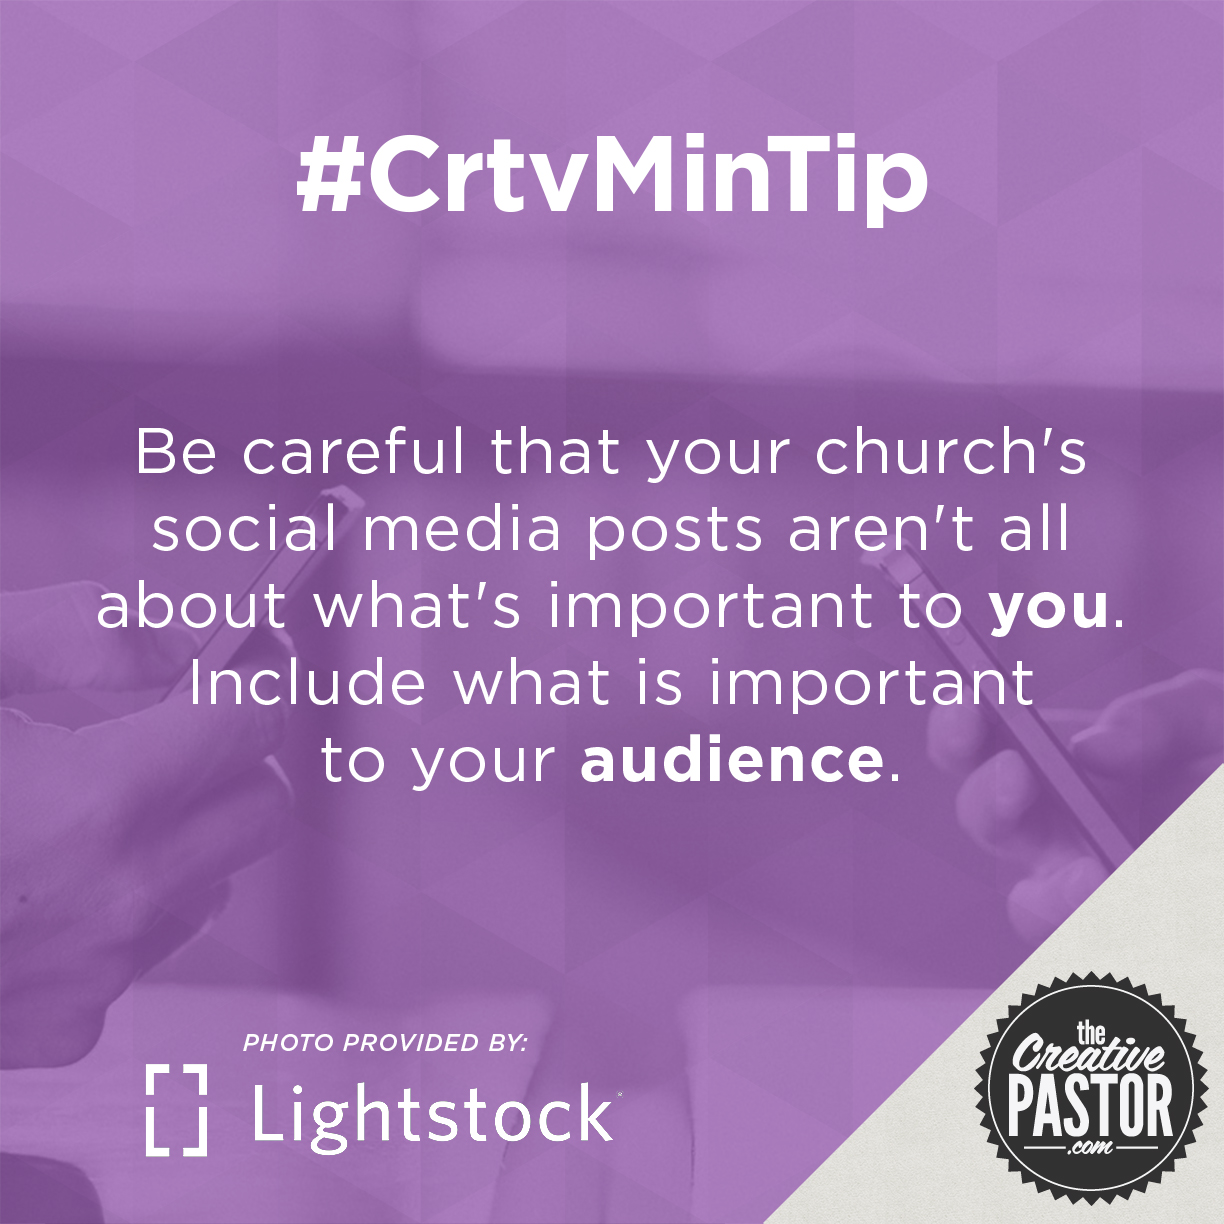 Be careful that your church's social media posts aren't all about what's important to YOU. Include what is important to your audience.